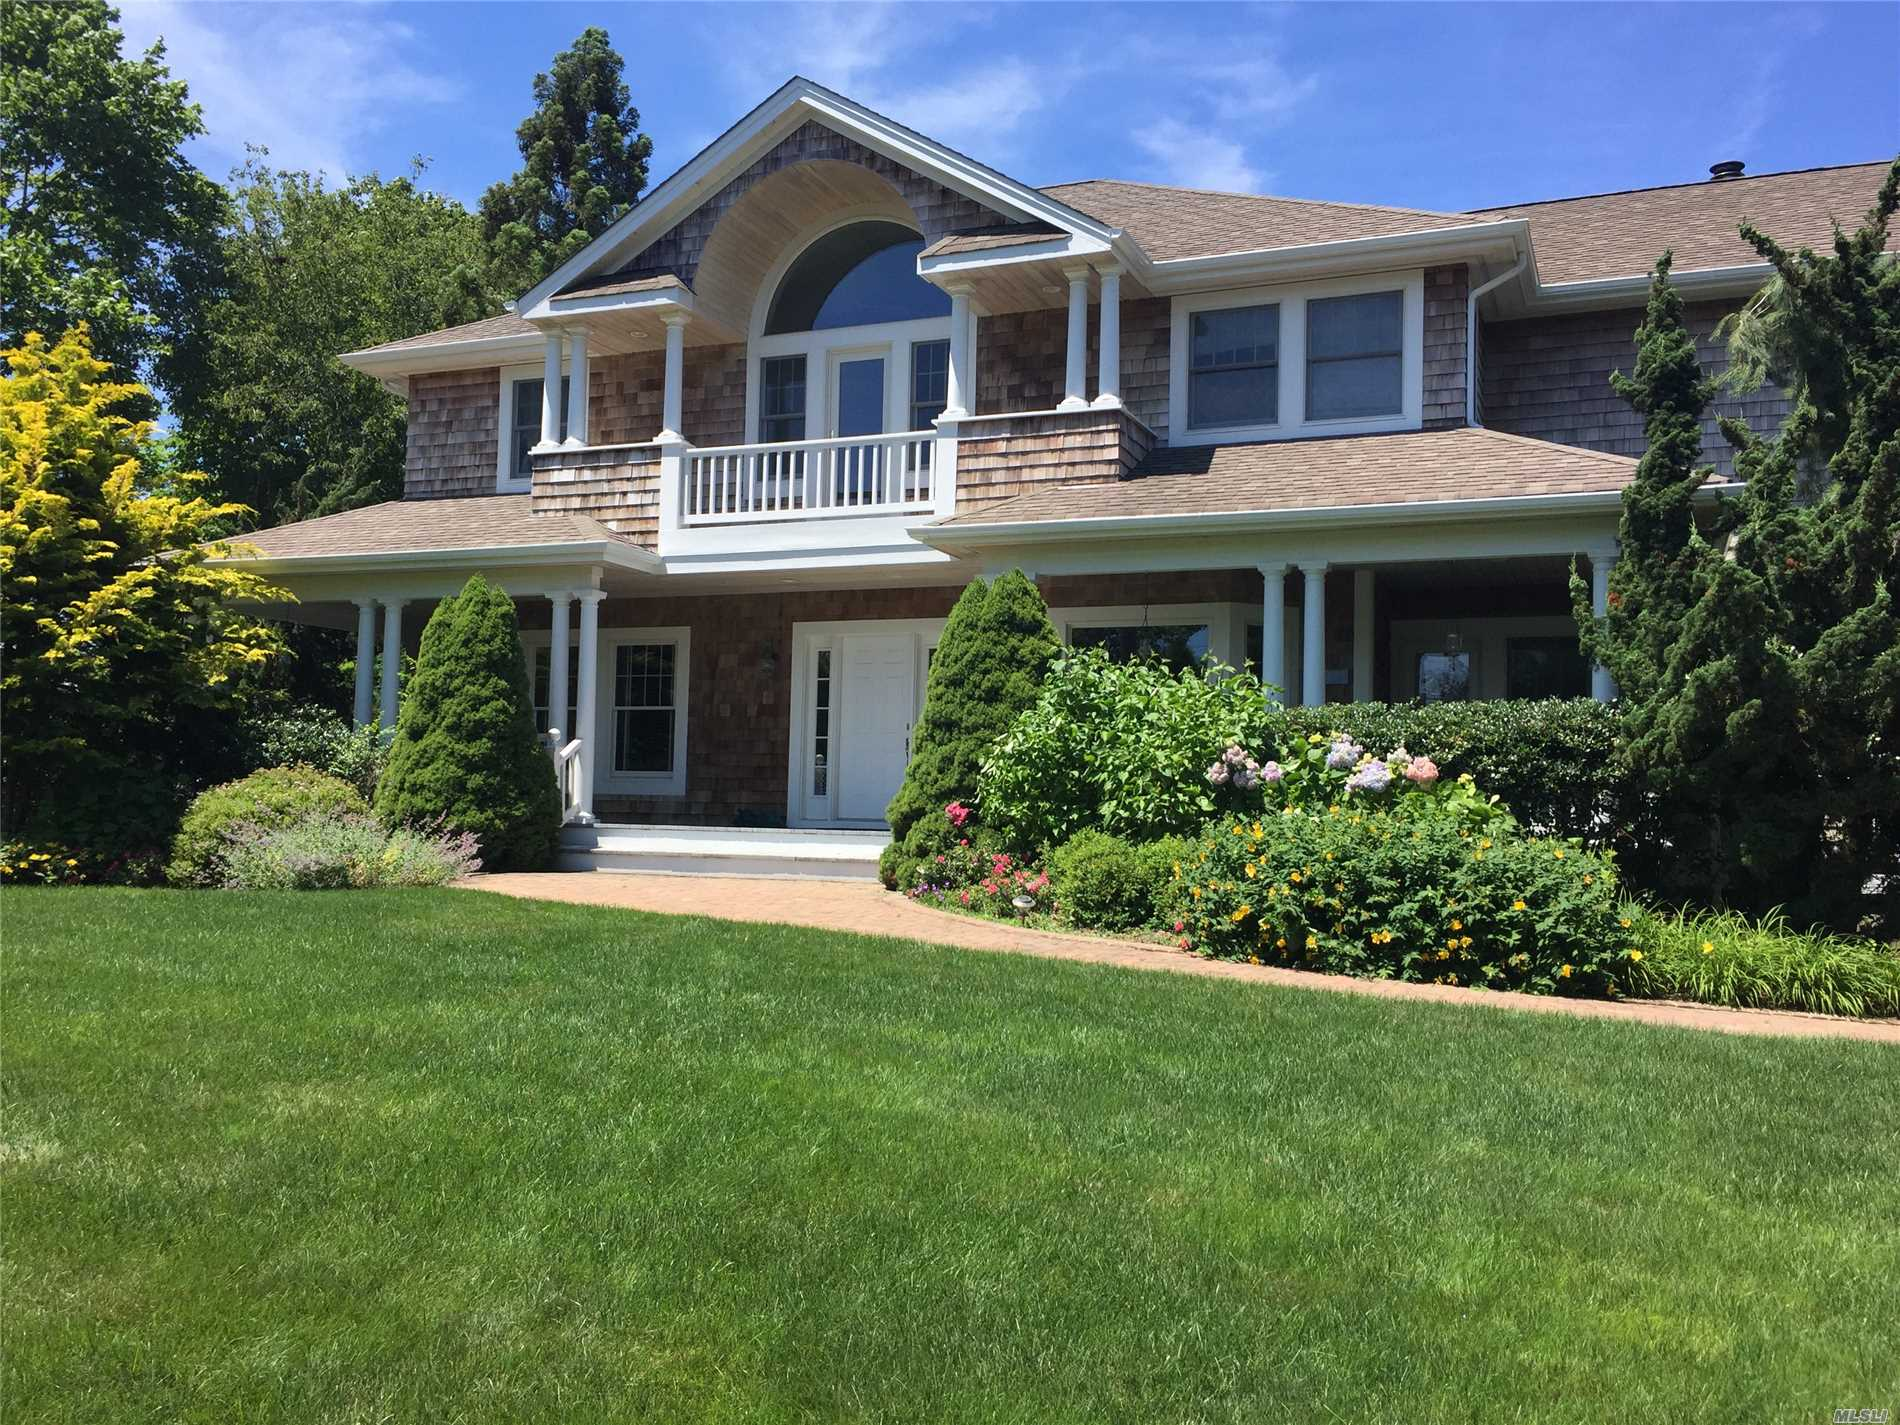 New Listing South Of Quogue St. This Lovely Light Filled Post Modern Home Offers Carefree Living In The Village. Open Floor Plan Includes A Centrally Located Kitchen Which Opens To The Living Room, Dining Room And Sun Room. Spacious Cedar Deck Overlooks An Expansive Lawn And Fenced Pool Surrounded By Mature Privet Hedges, Providing Privacy. Second Floor Includes A Spacious Master Suite With Two Additional Bedrooms, Baths And A Bonus Room For Additional Guests.